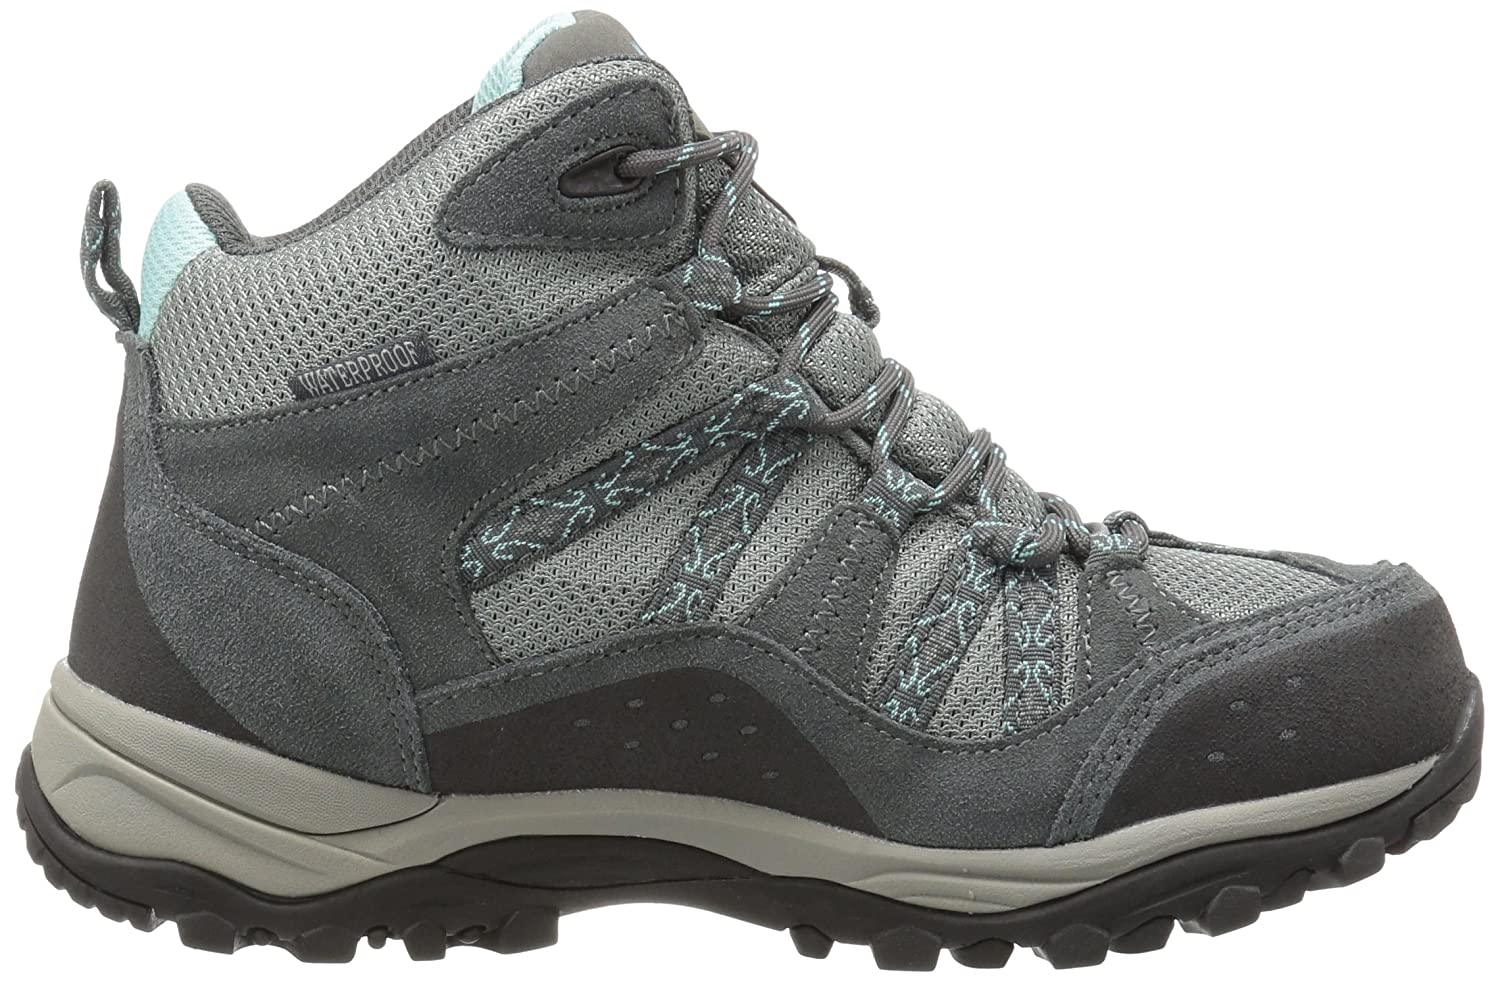 Northside Womens Freemont Leather Mid Waterproof Hiking Boot Freemont-W